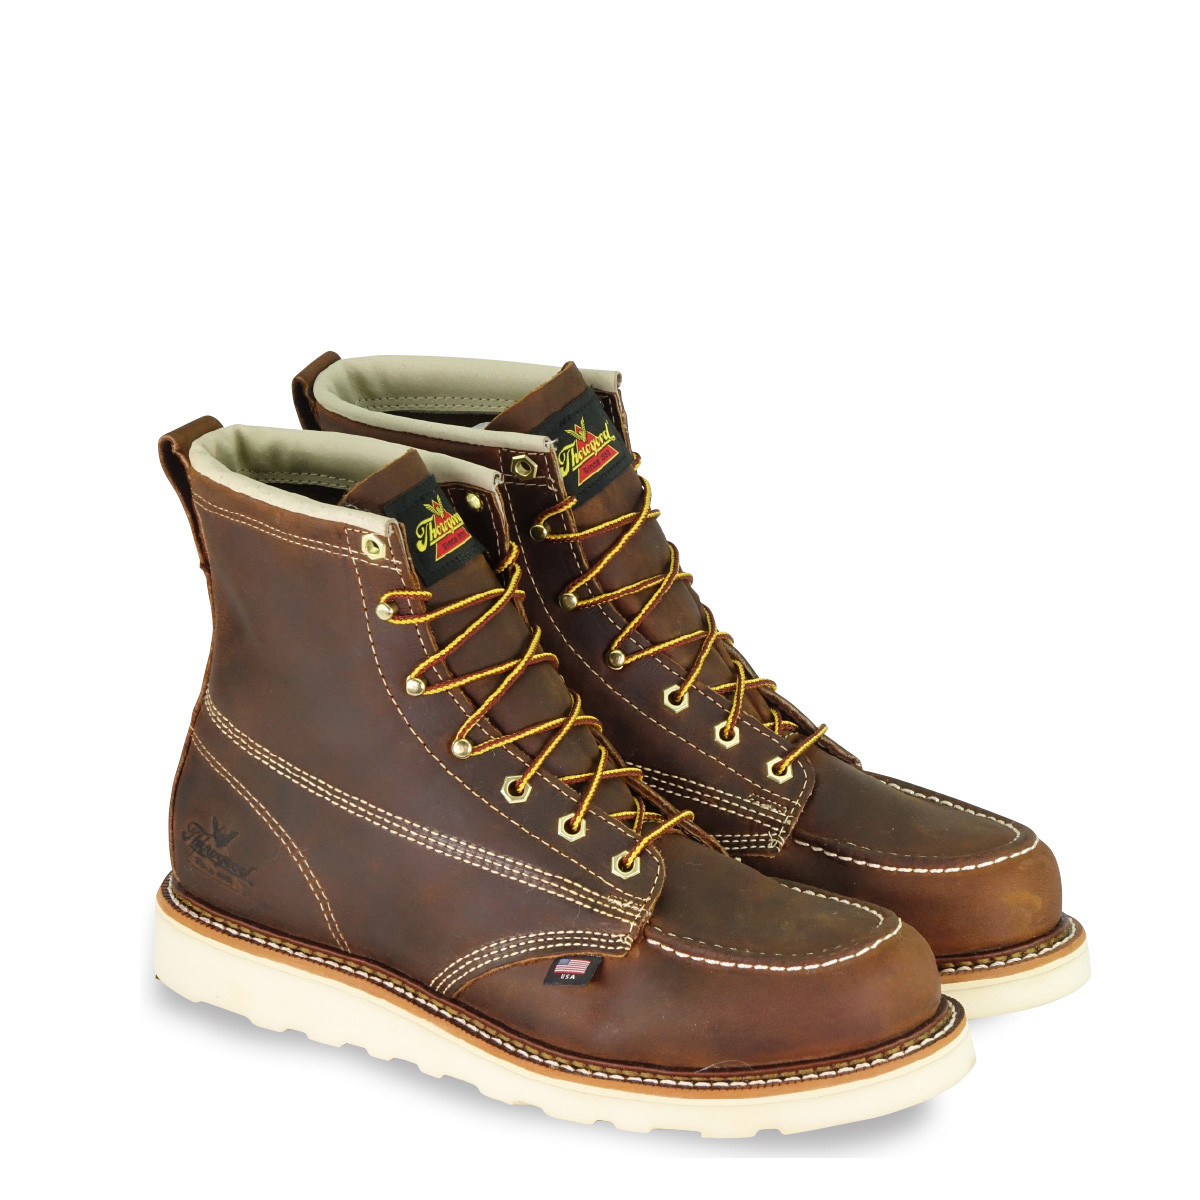 5502610d81f MEN'S THOROGOOD AMERICAN HERITAGE 6″ TRAIL CRAZY HORSE MOC NON ...